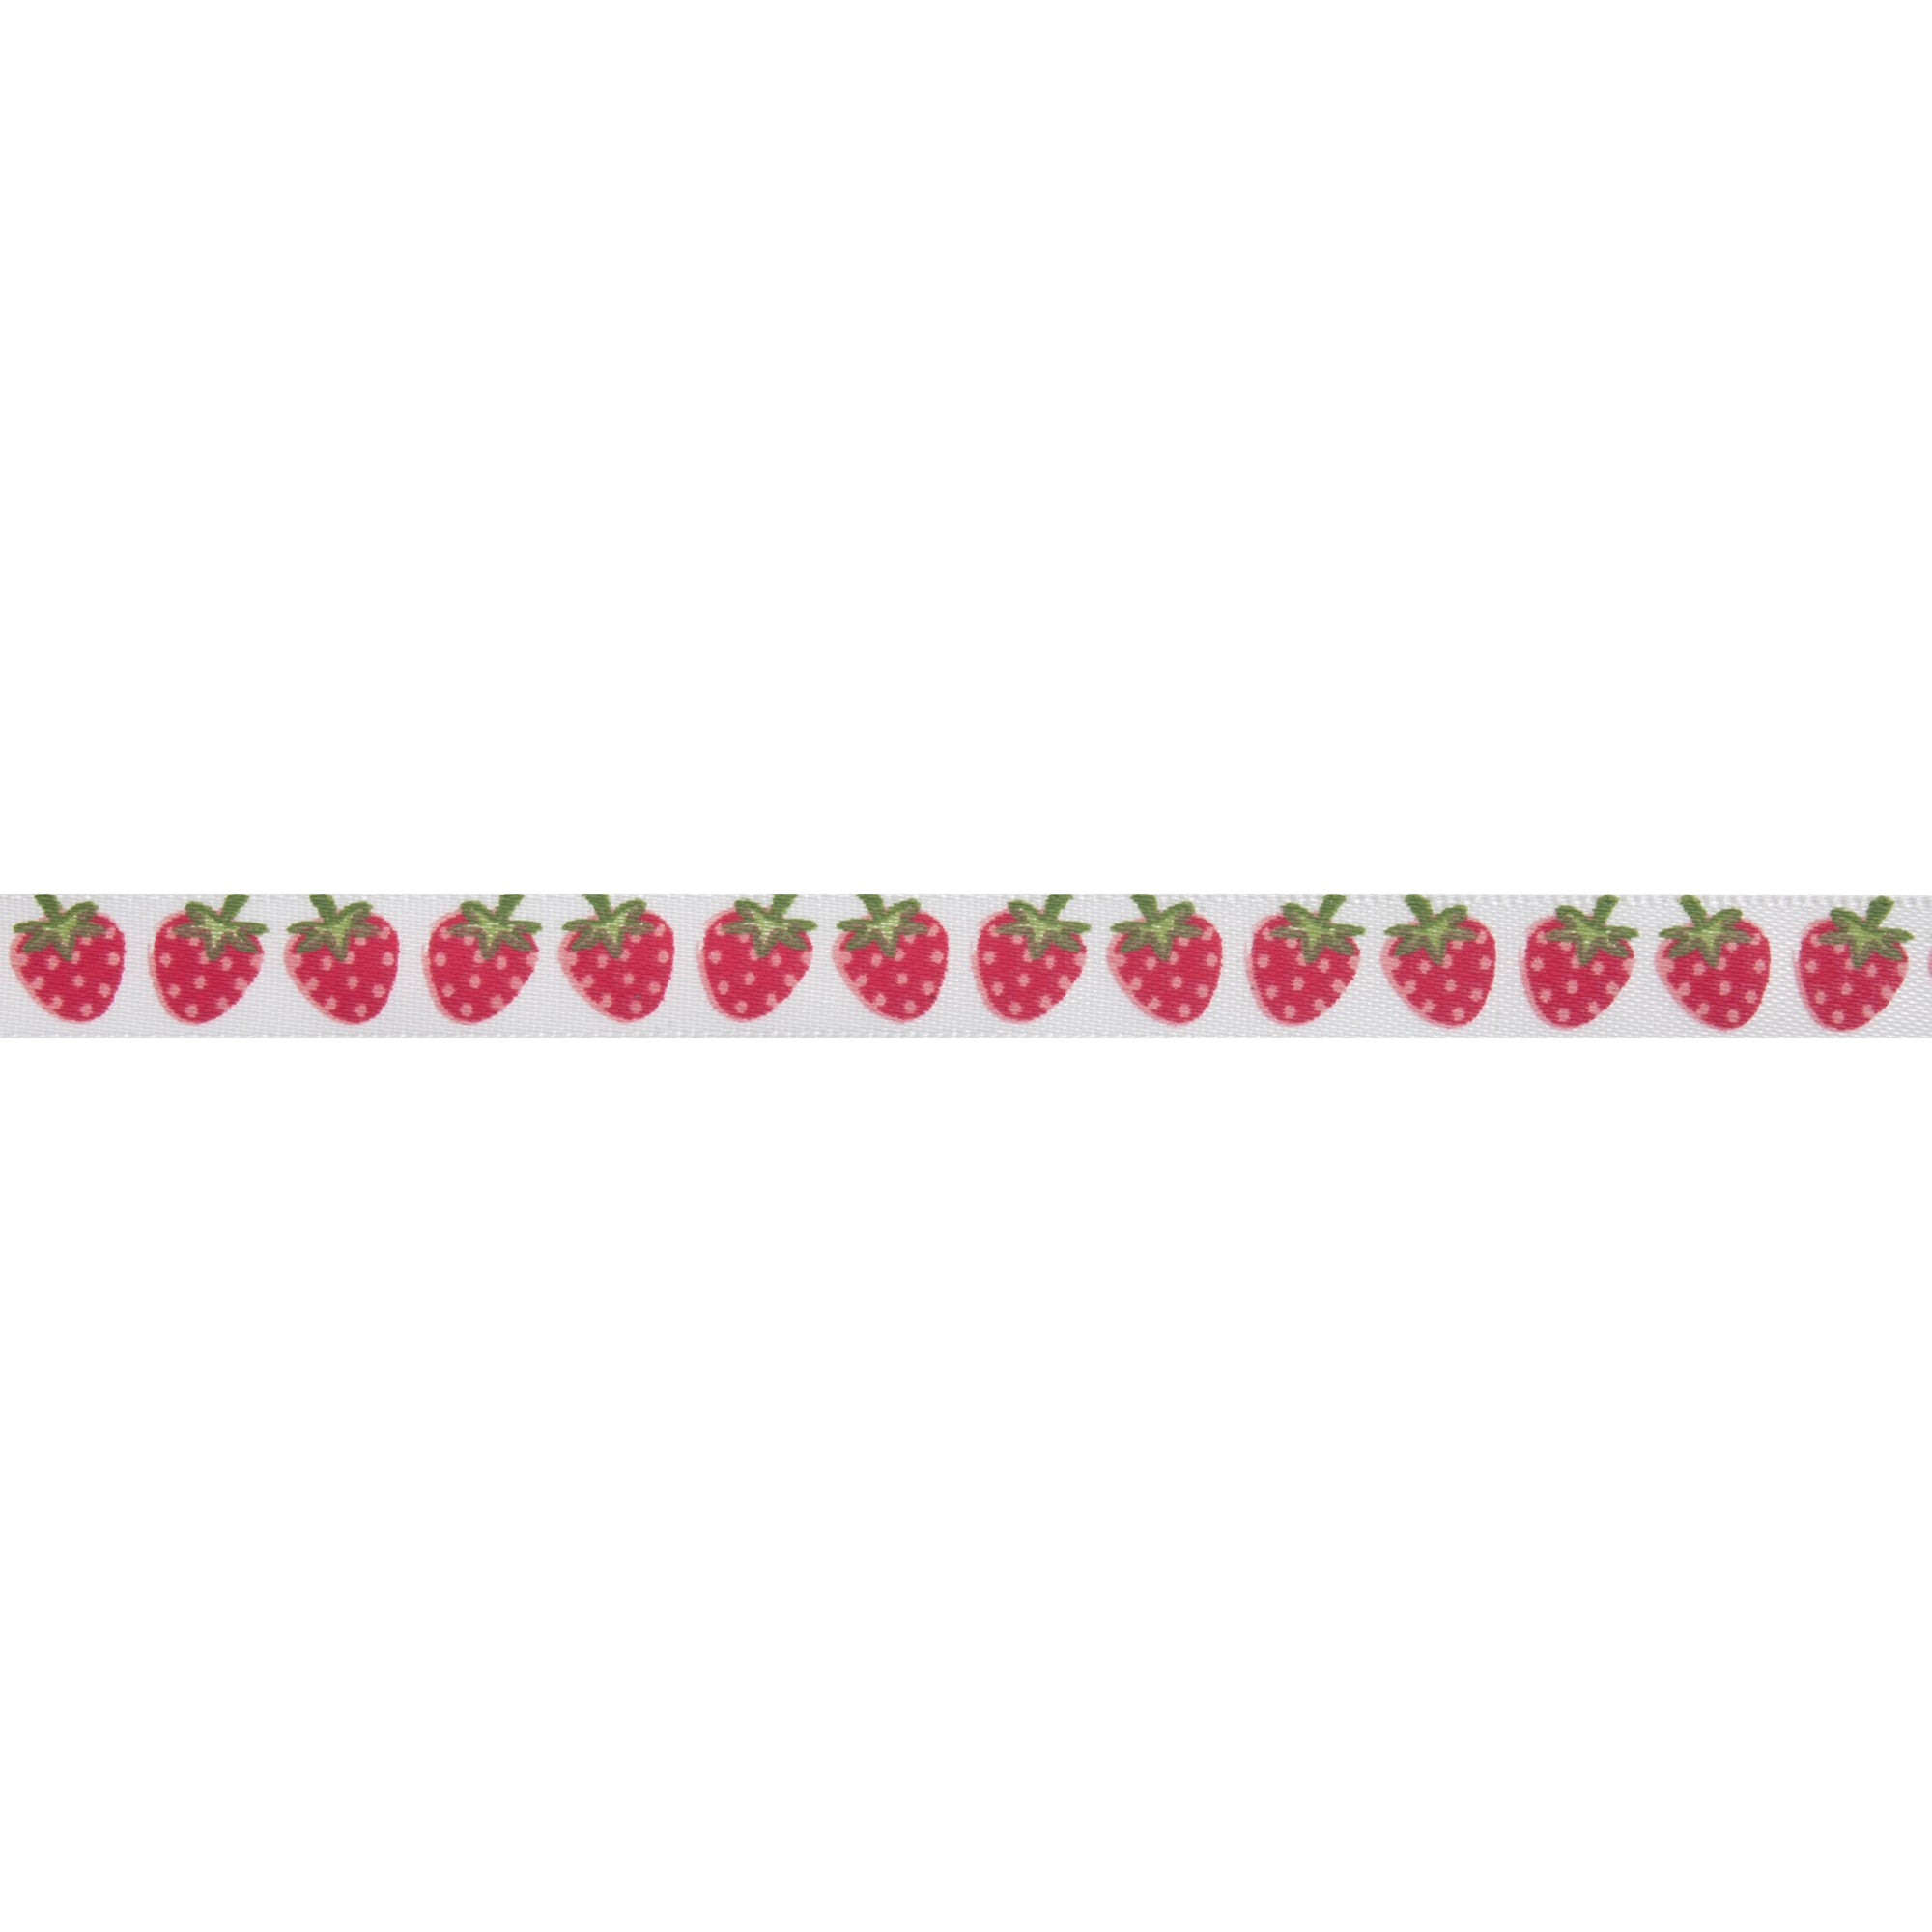 Bowtique Strawberries Satin Ribbon